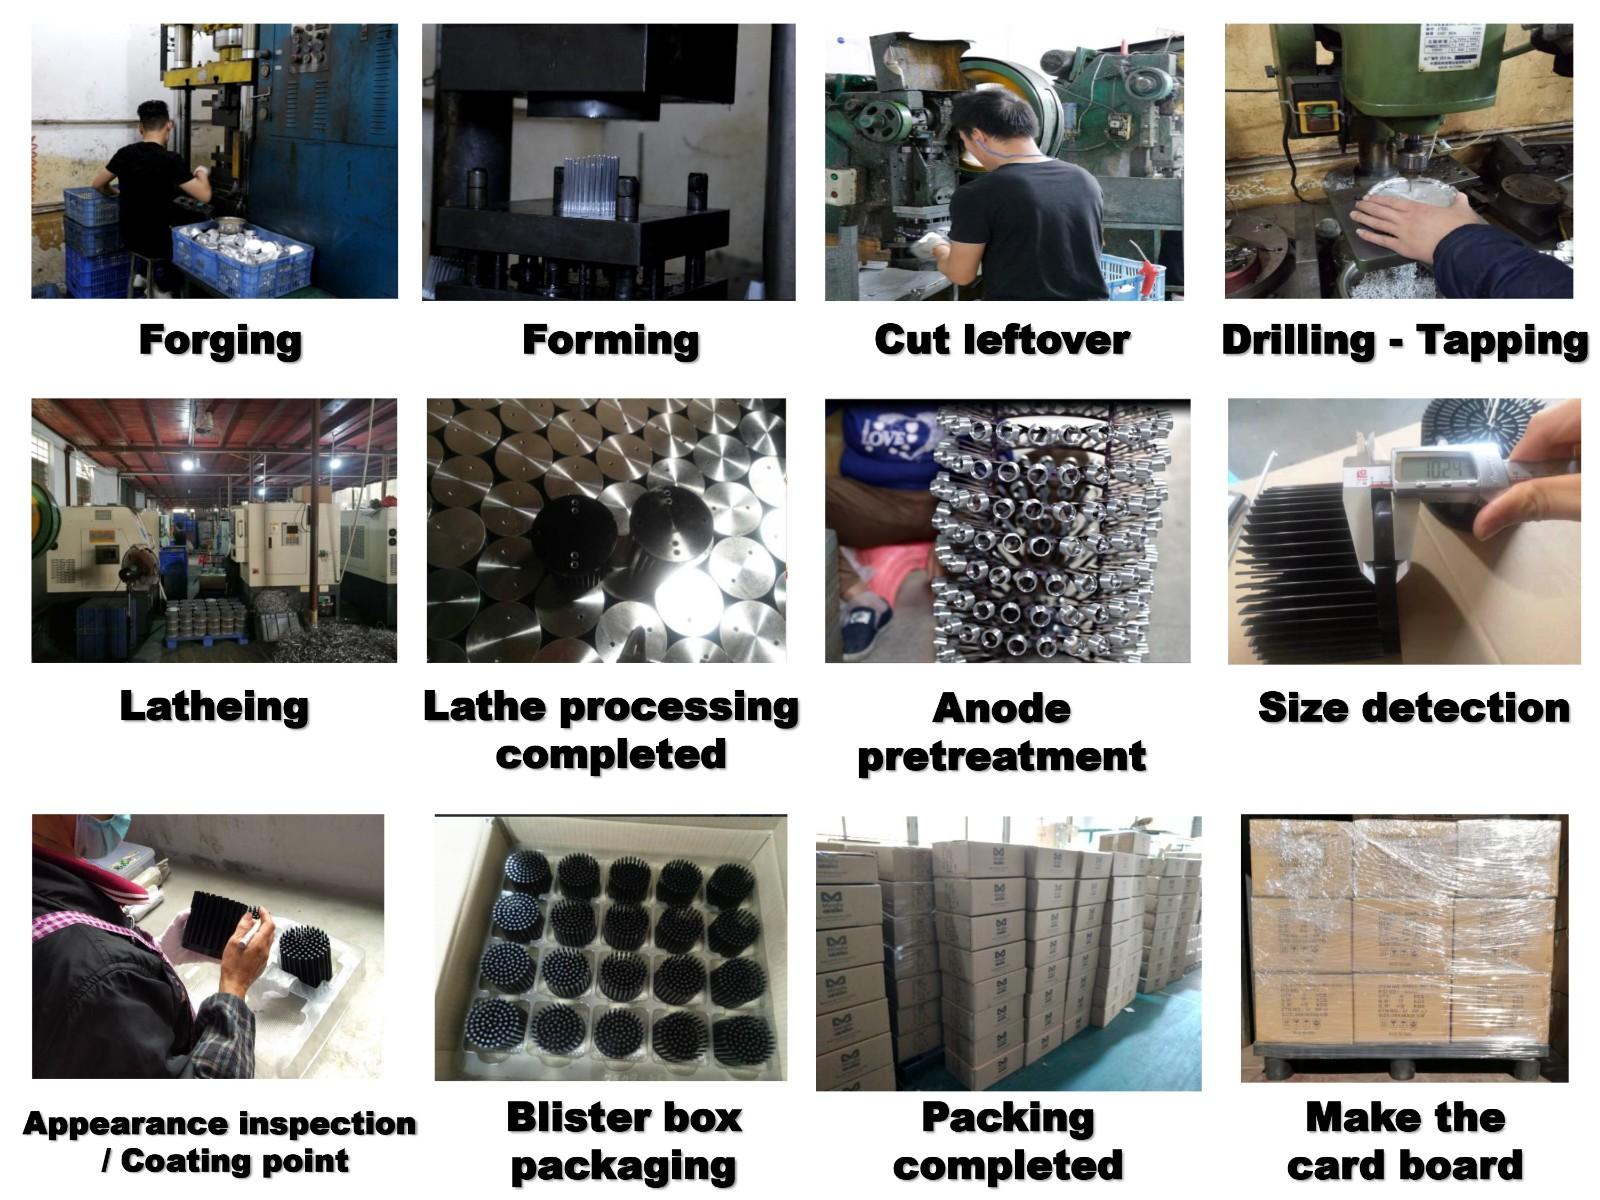 Mingfa Tech-Knowing About Extrusion Process, Mingfatech Manufacturing Limited